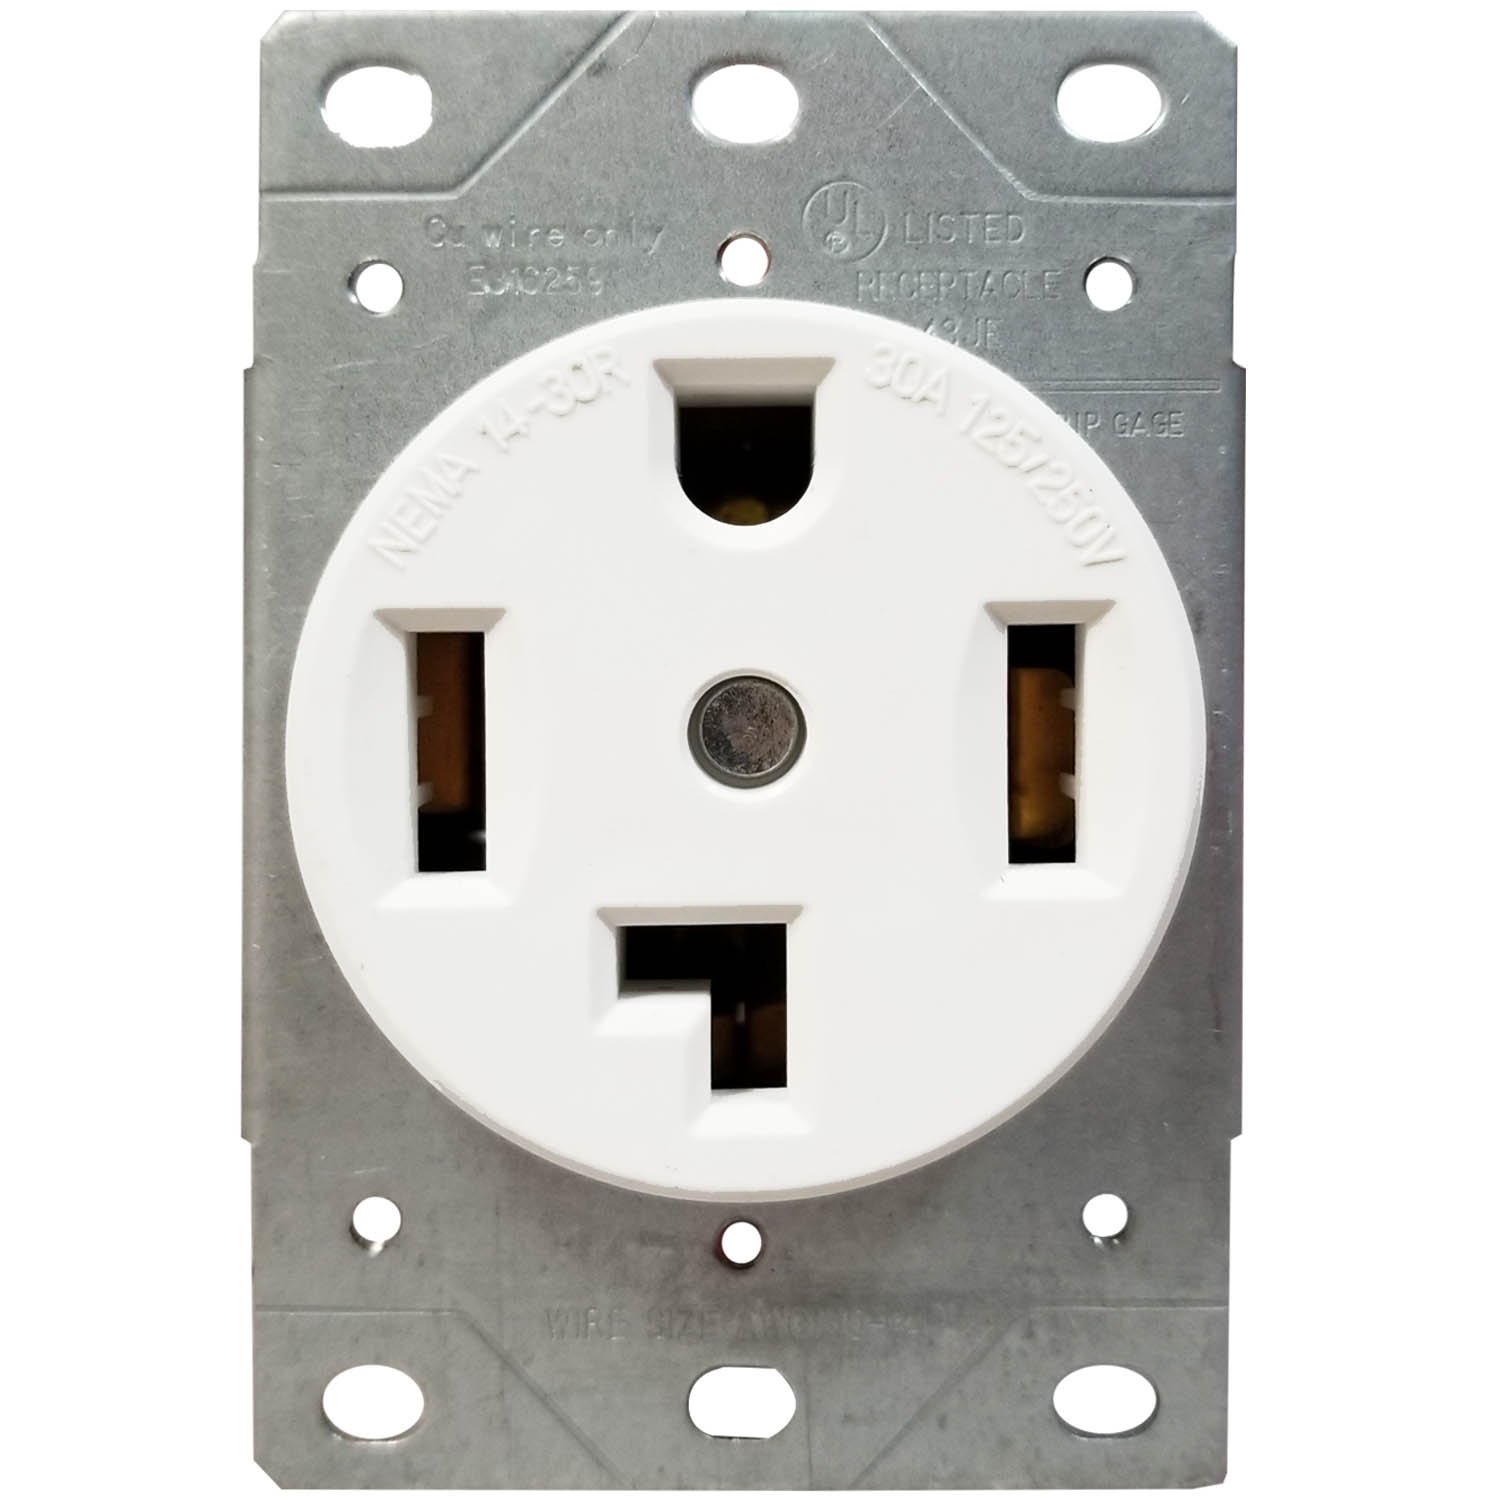 ENERLITES 30 Amp Electrical Dryer Outlet | NEMA 14-30R, Outdoor/Indoor, Flush Mount Receptacle, 3-Pole, 4 Wire, (10,8,6,4) AWG, Industrial Grade, 125/250V, 66300-W | White